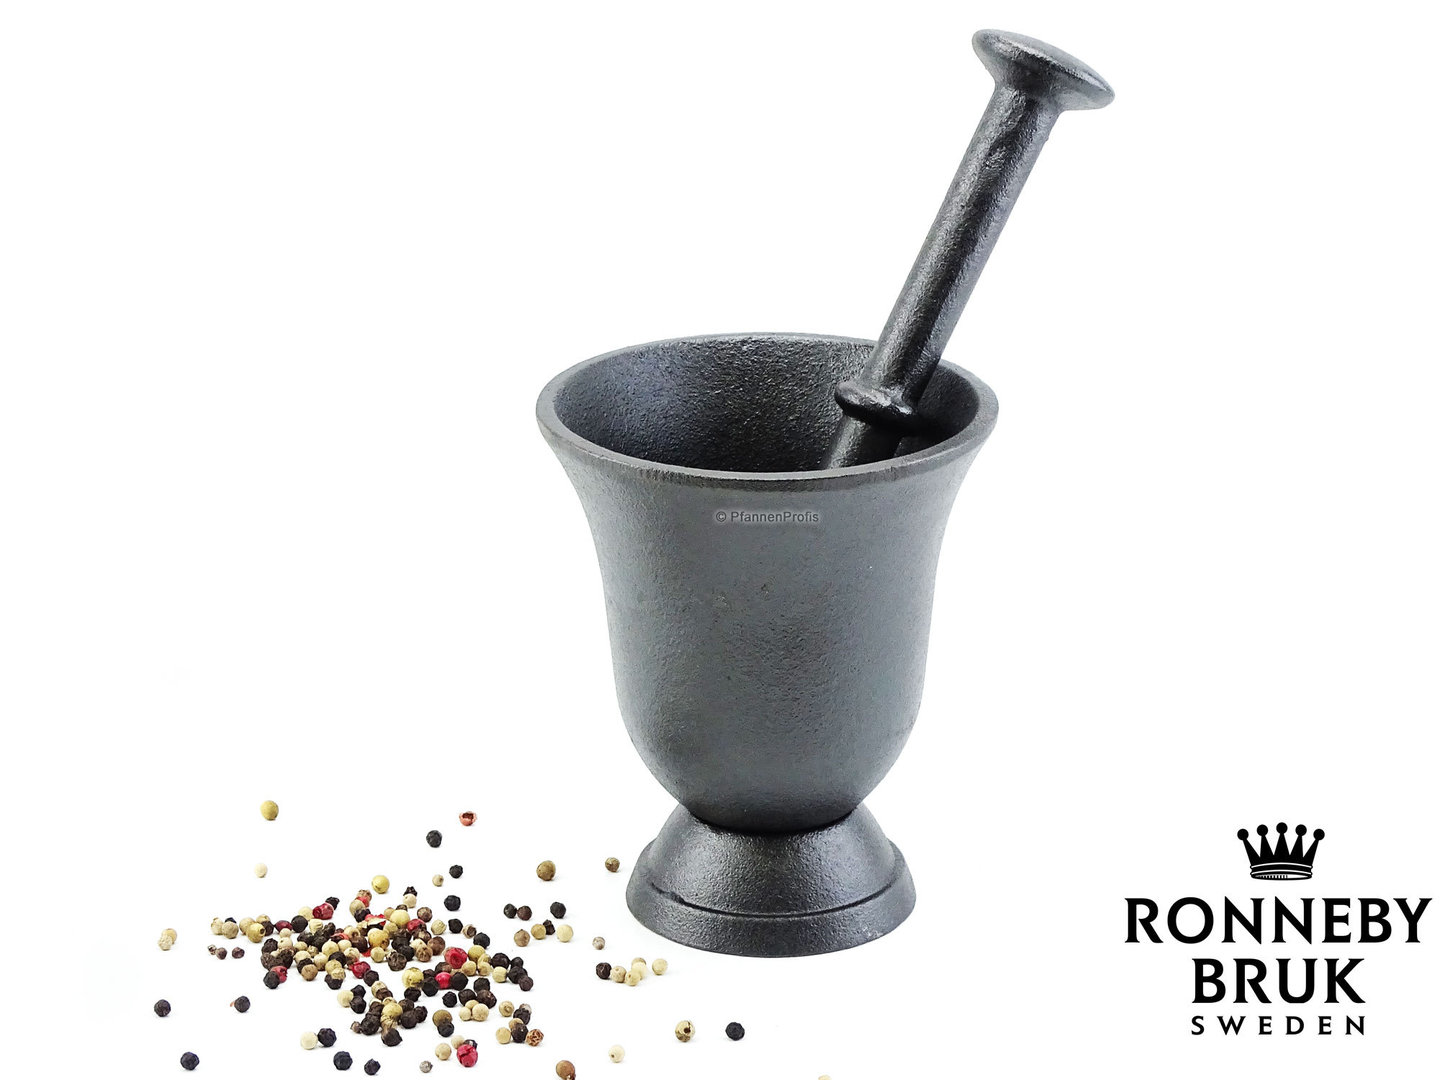 RONNEBY BRUK cast iron mortar with pestle